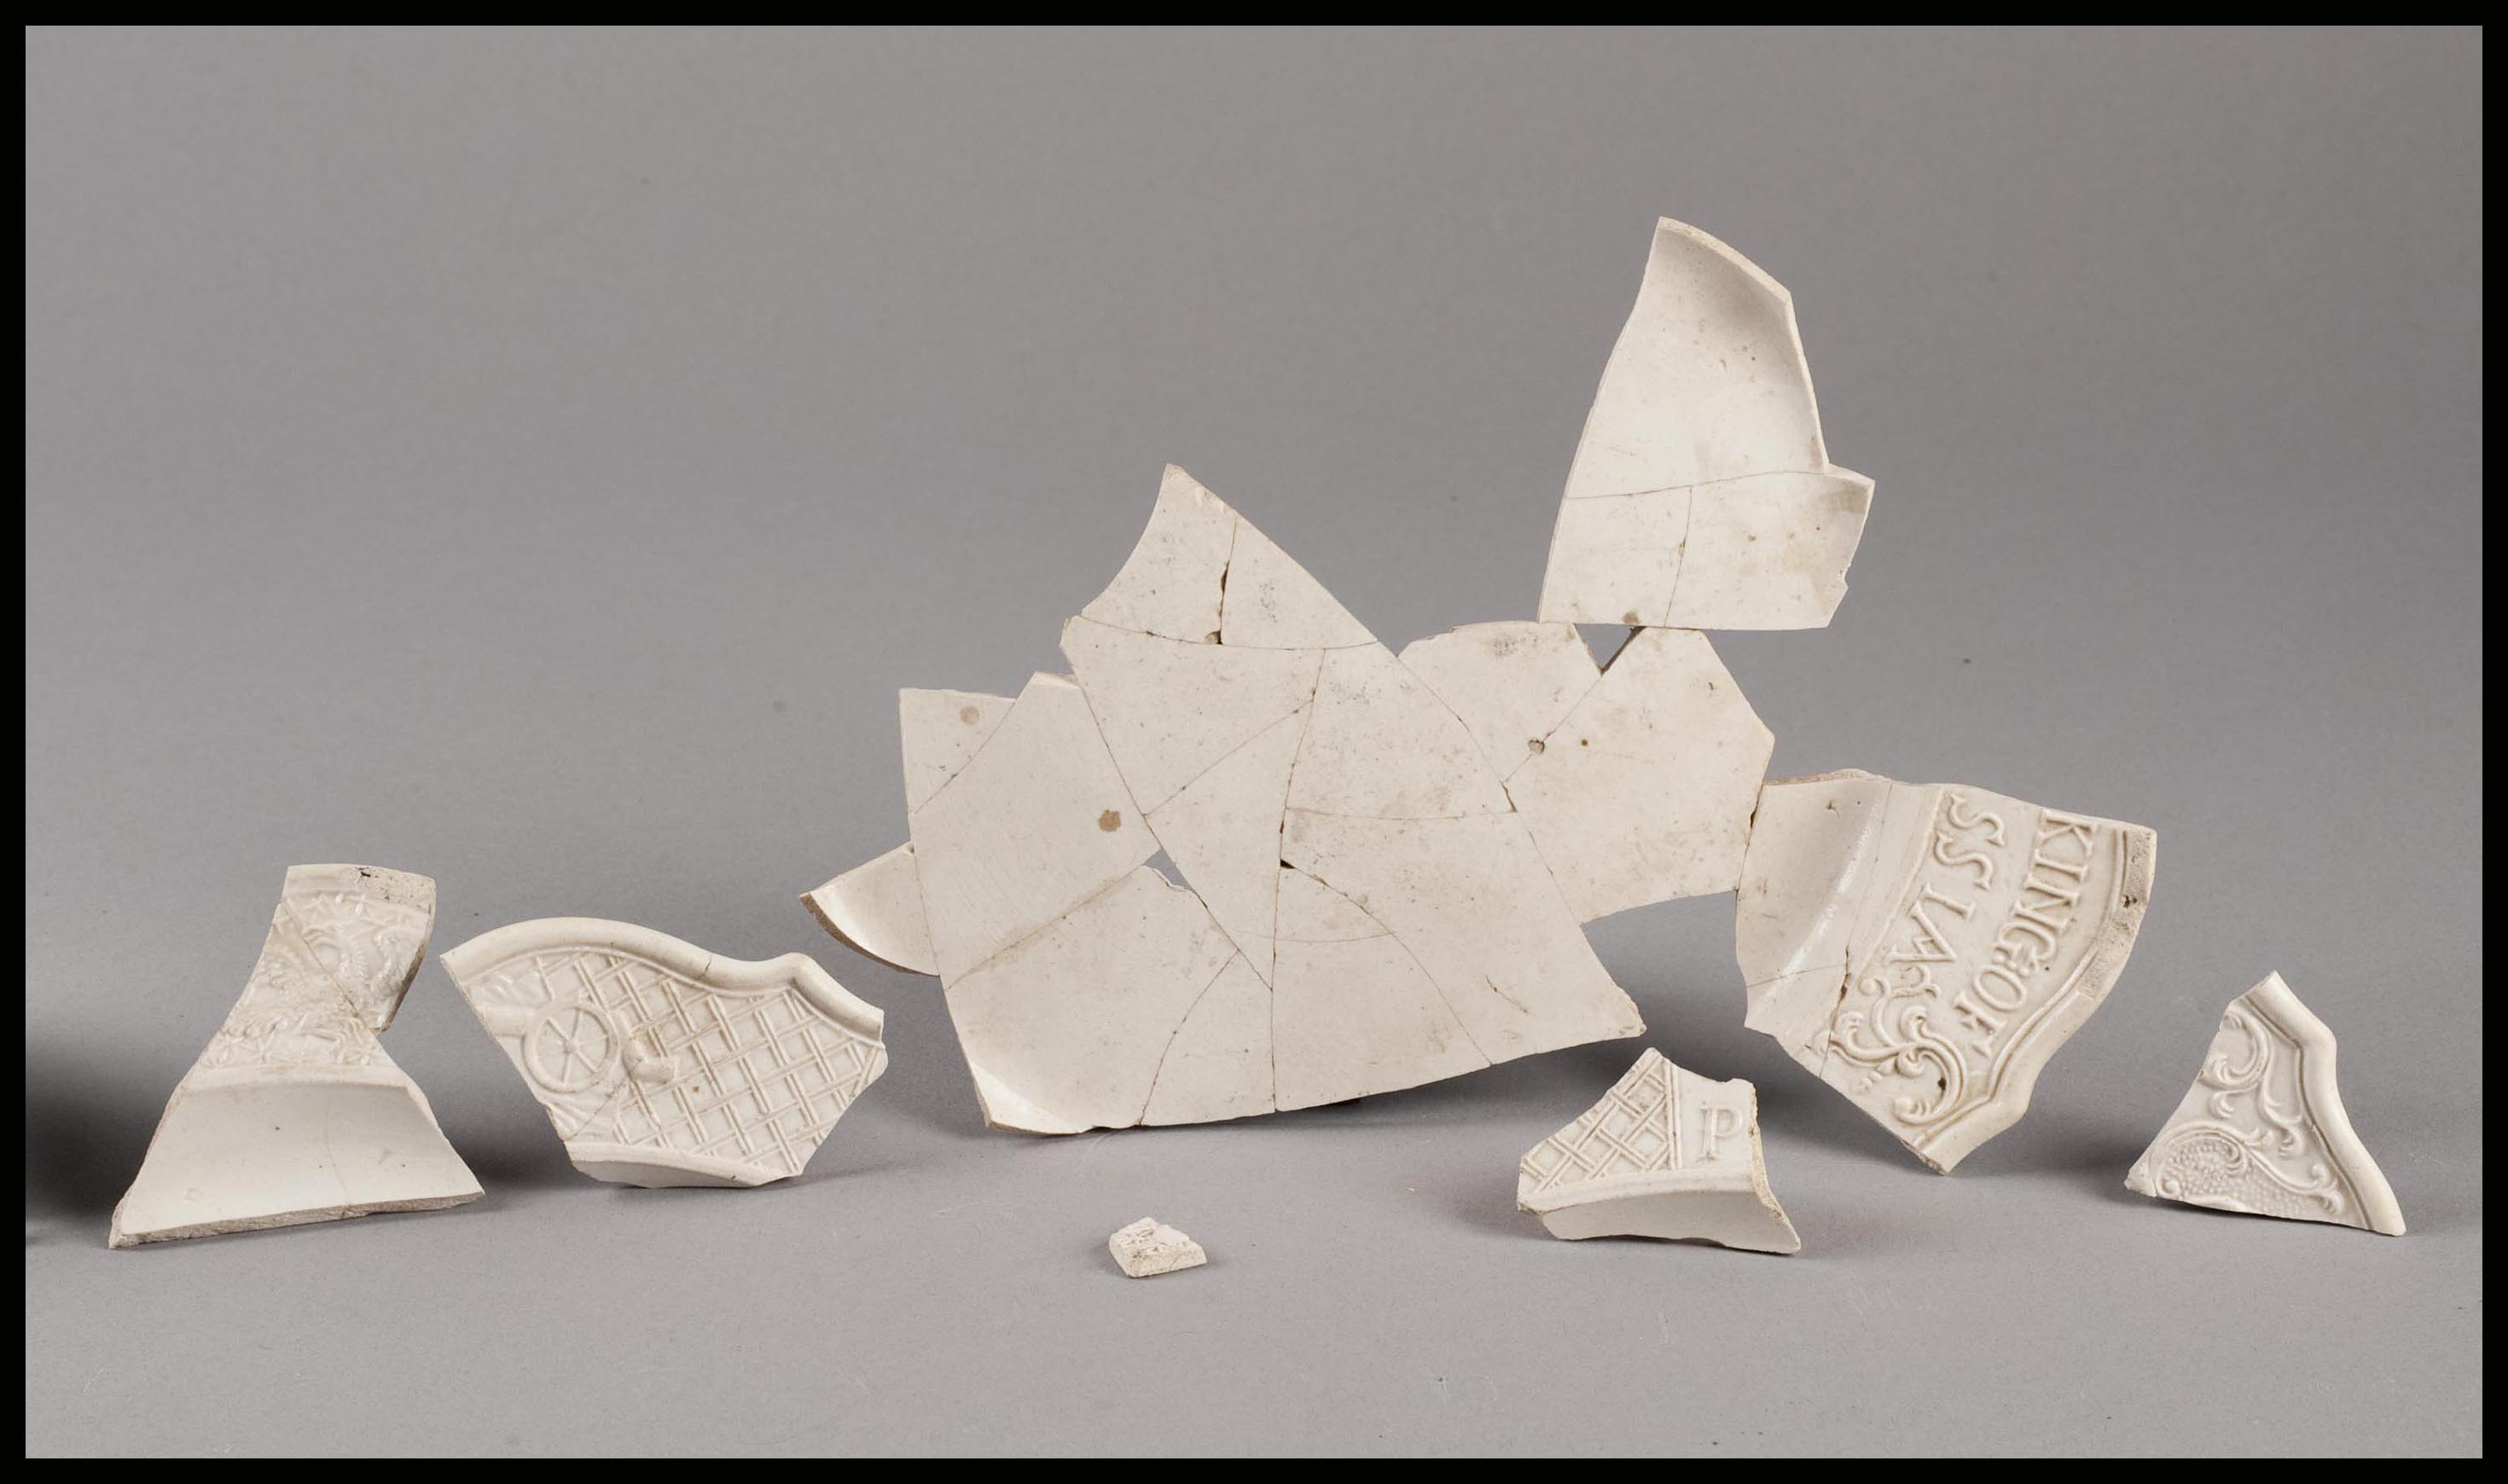 Broken fragments of a plate are glued together, but the plate is not complete.